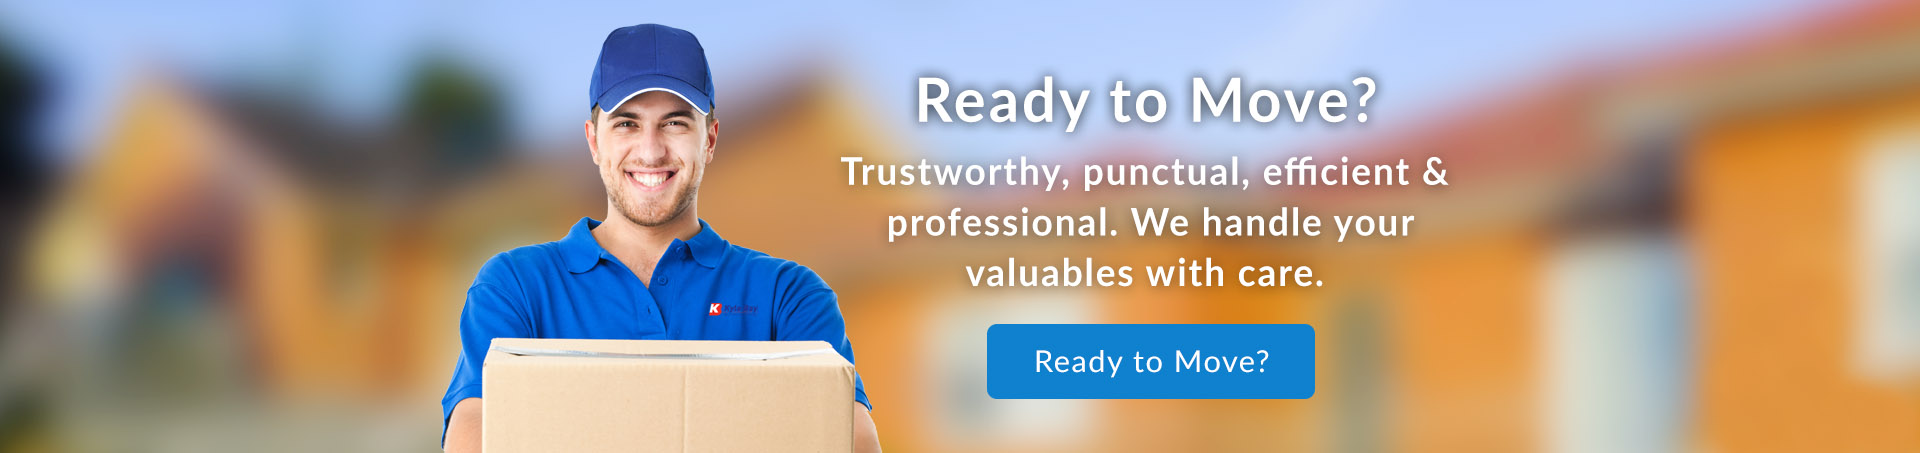 Ready to Move? Trustworthy, punctual, efficient & professional. We handle your valuables with care.